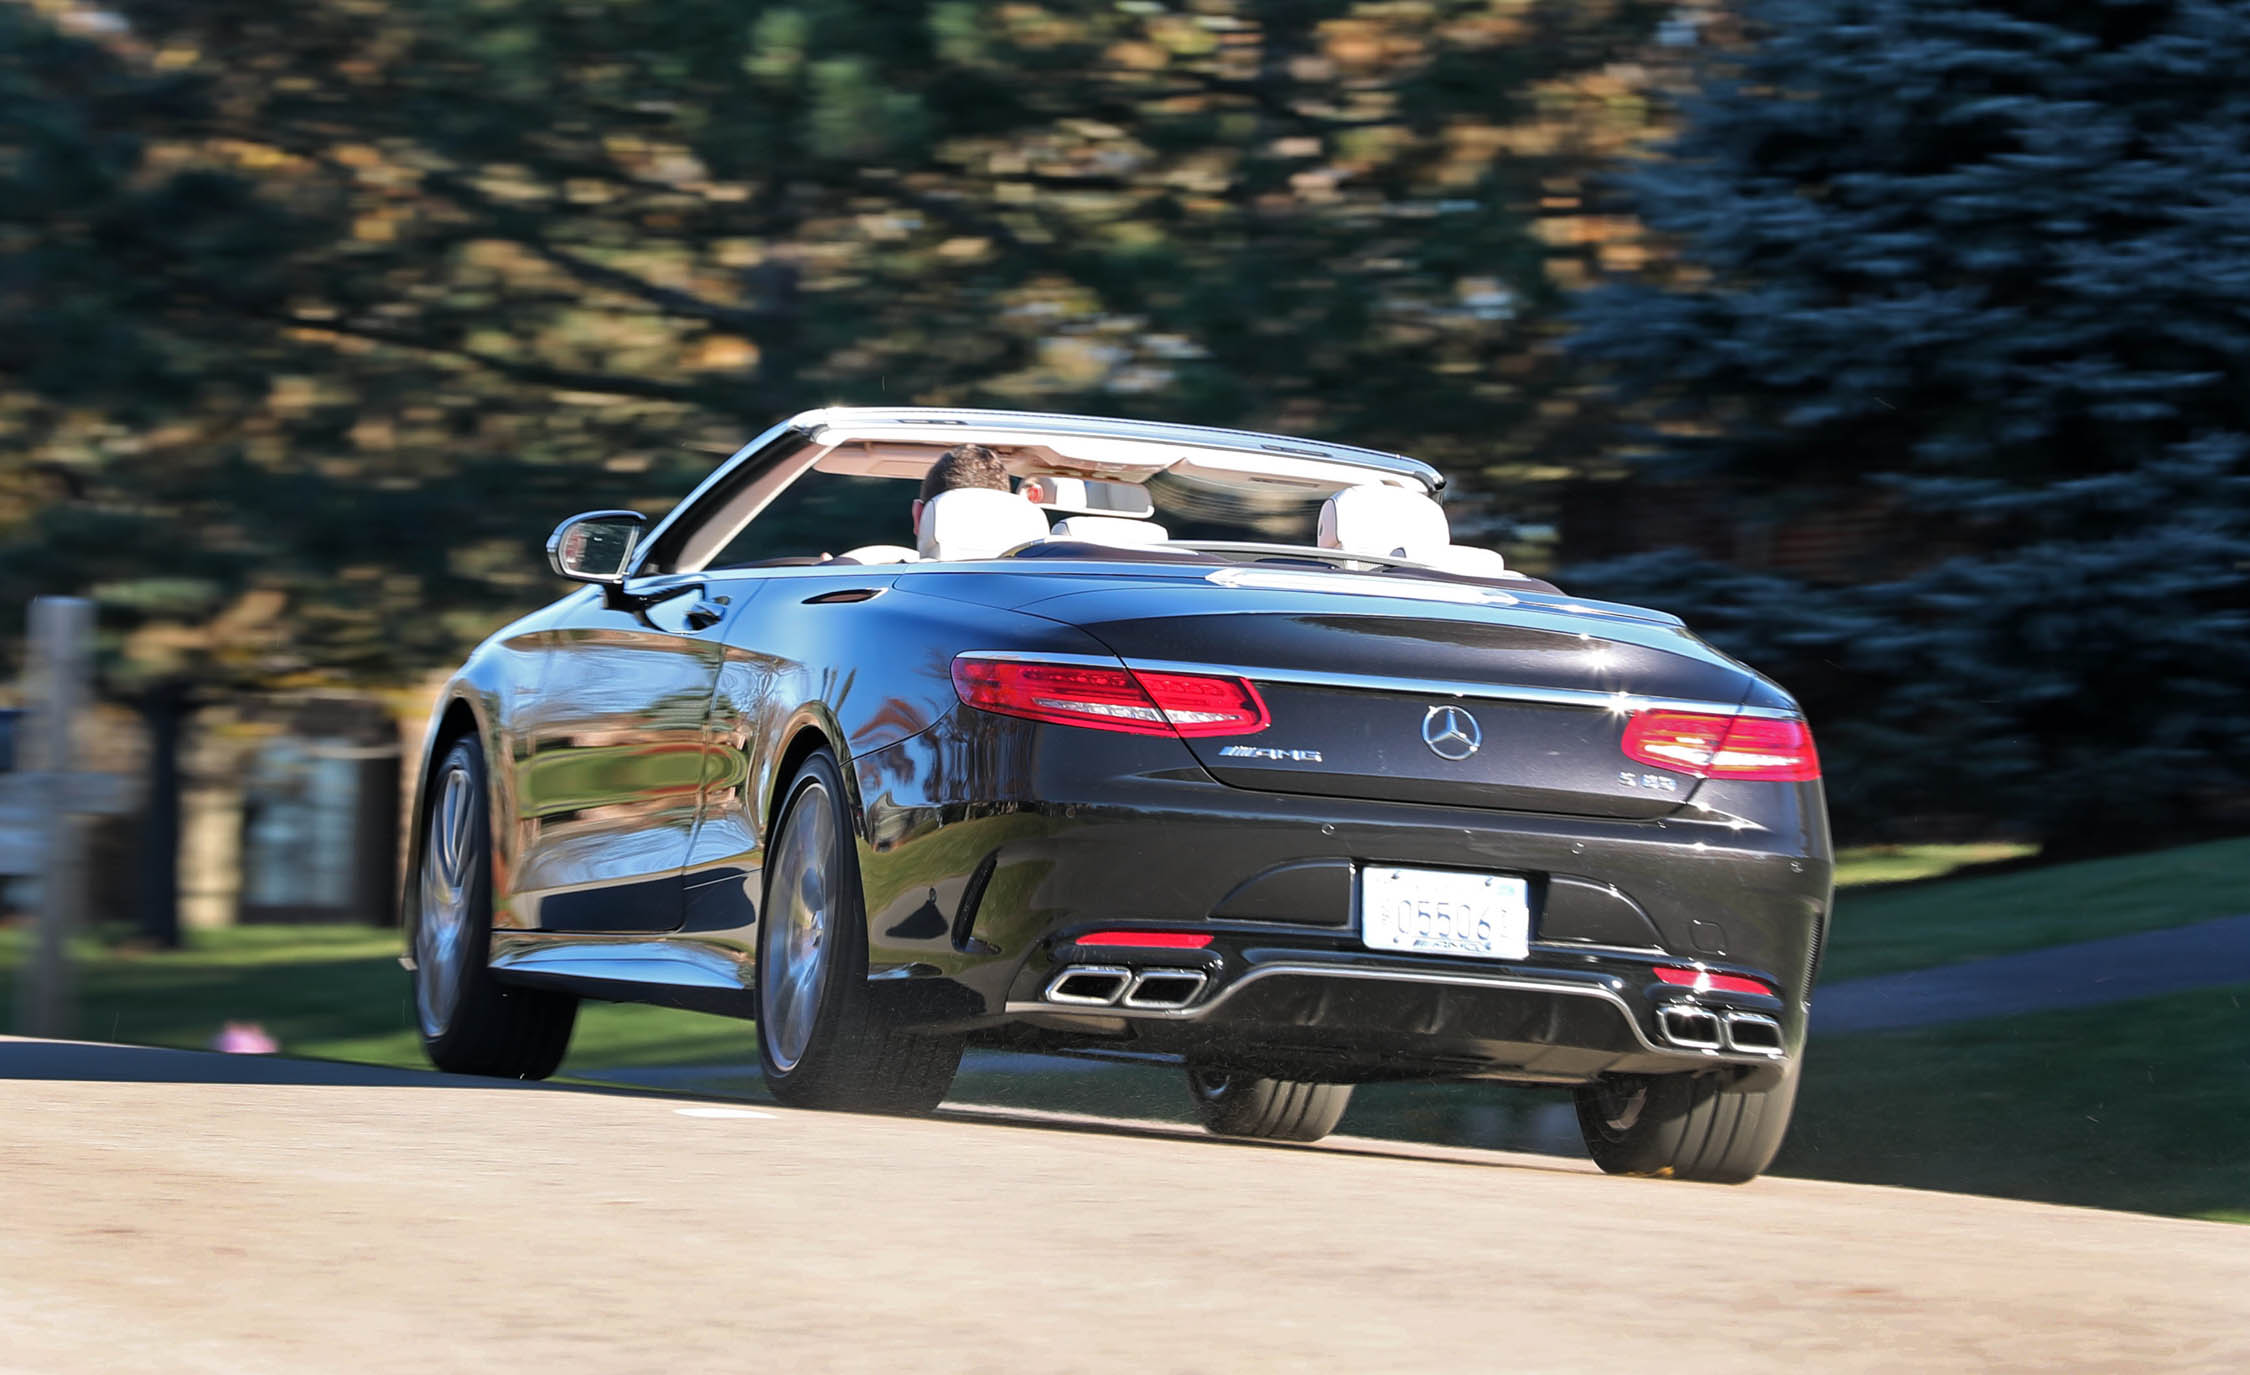 2017 Mercedes Amg S63 Cabriolet Test Drive Rear View (Photo 33 of 38)